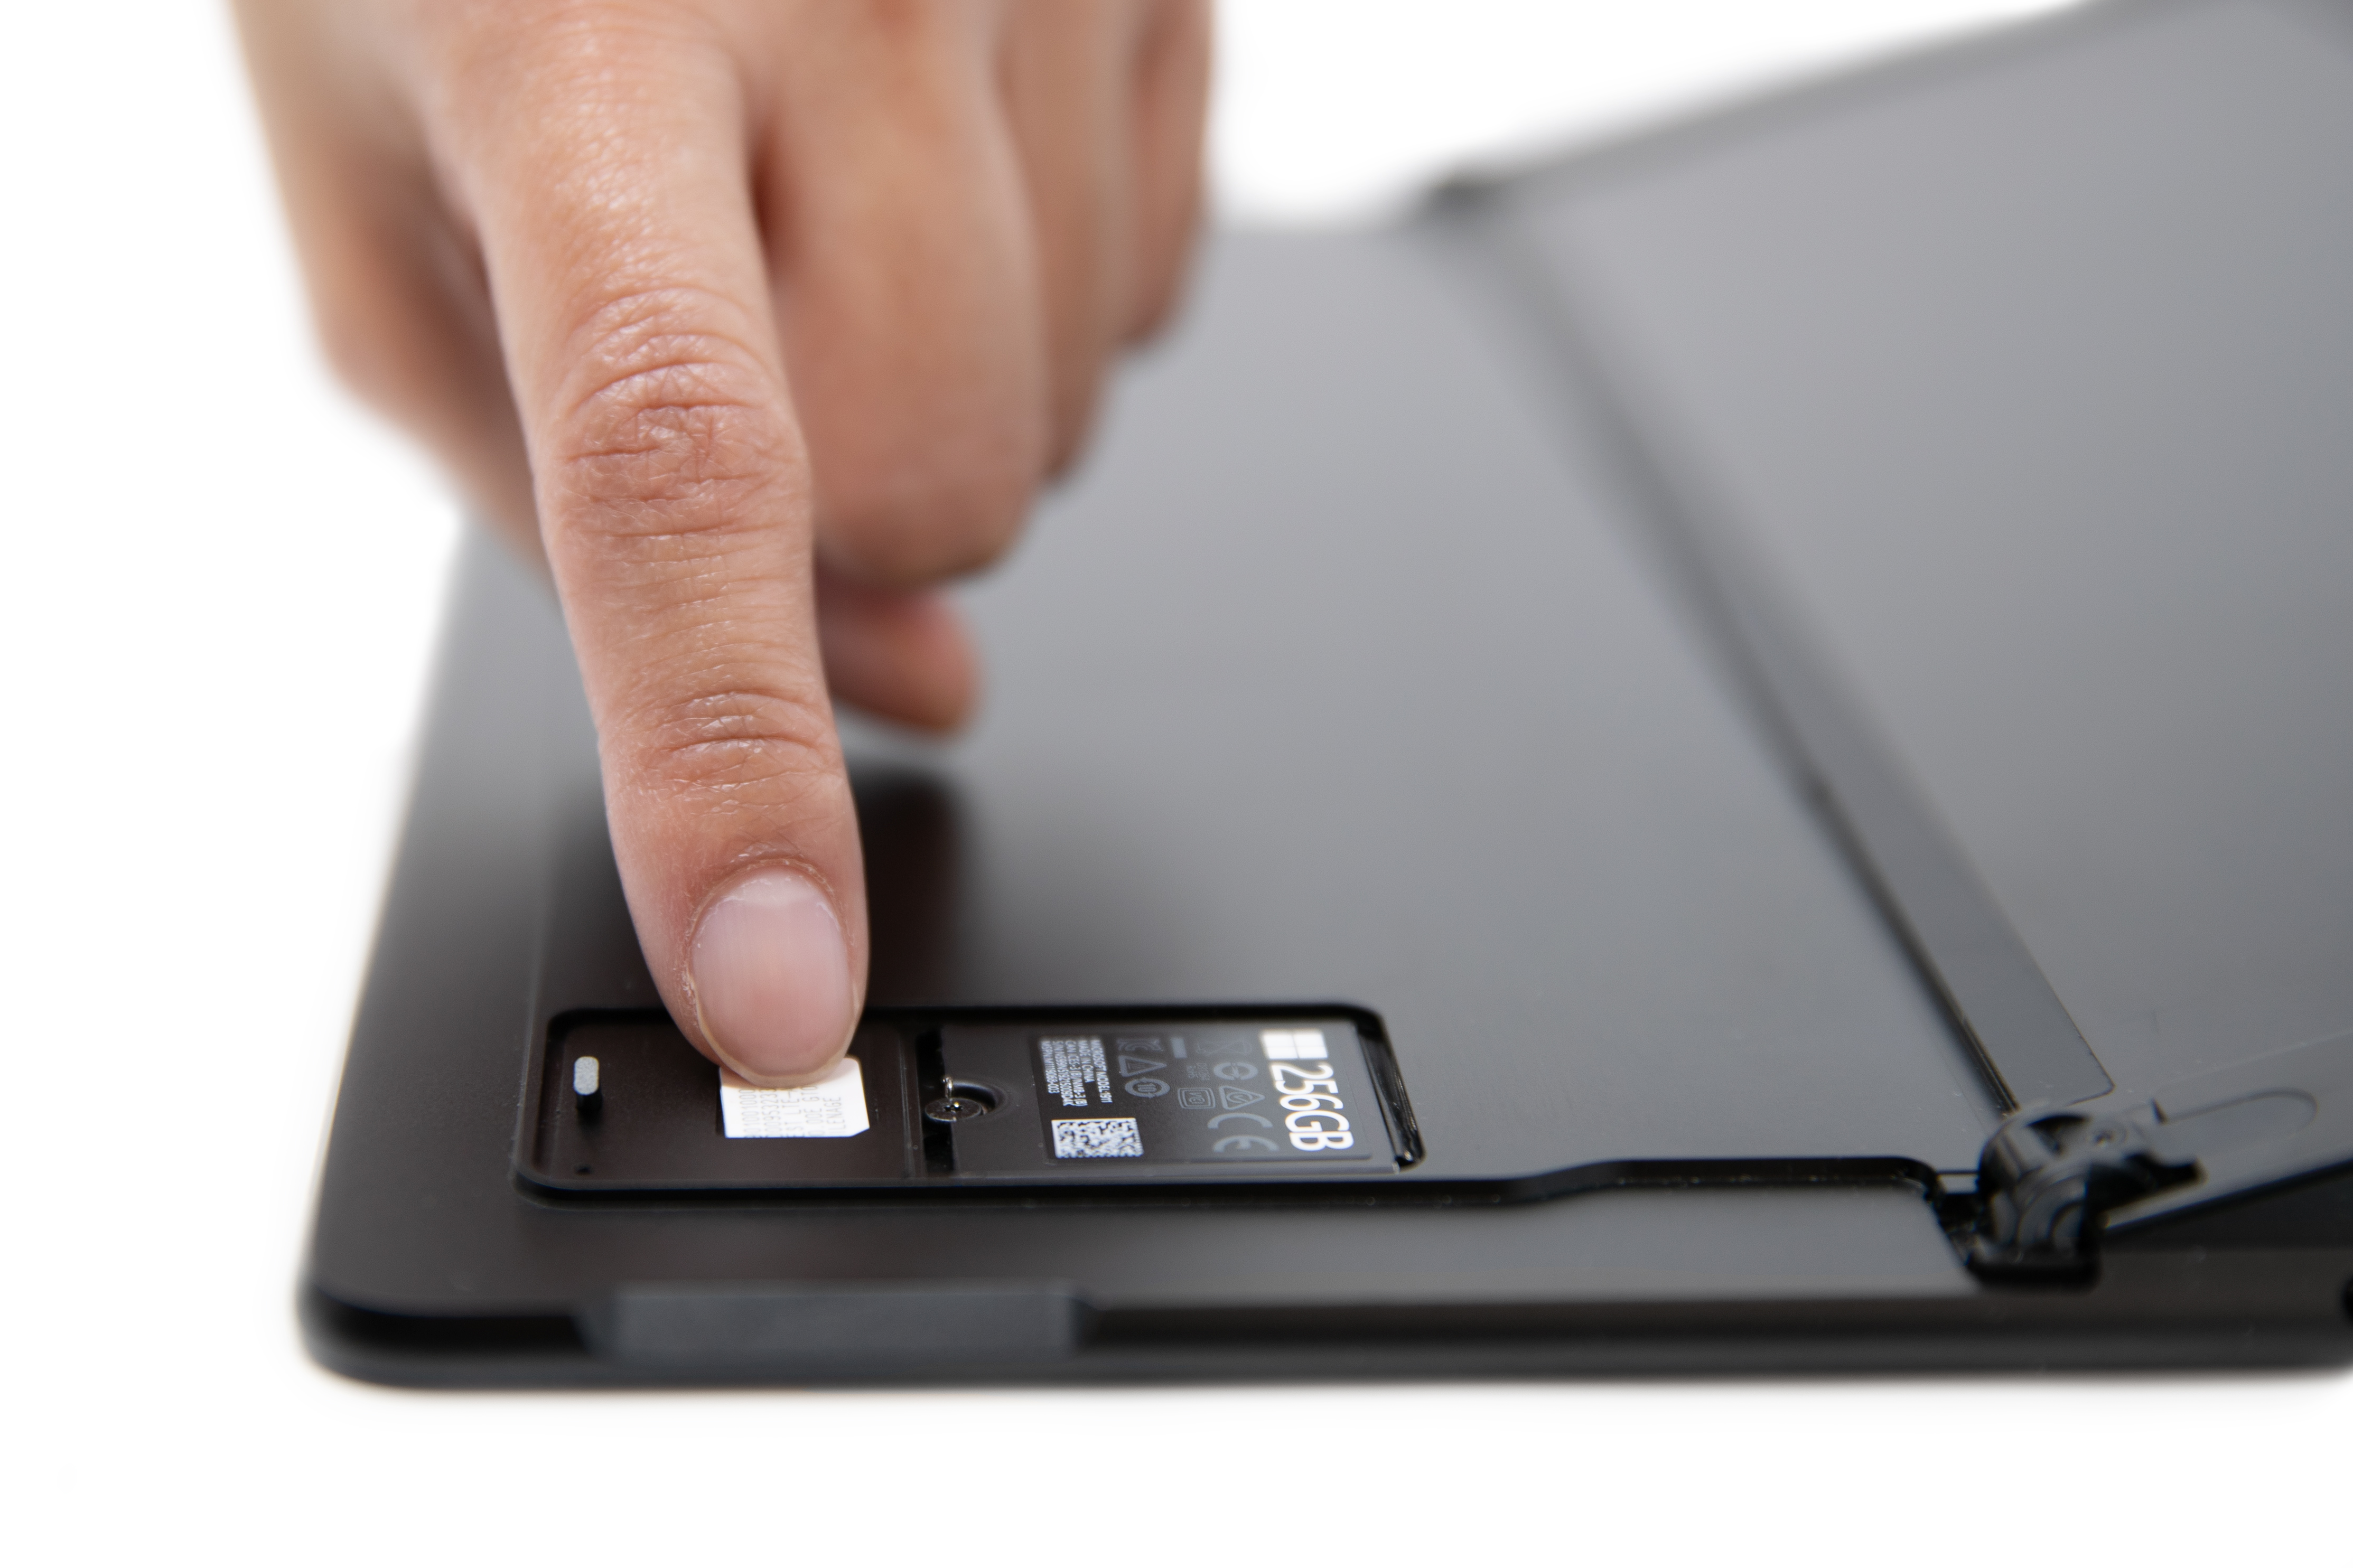 A person sliding in a SIM card into the Surface Pro X SIM slot.